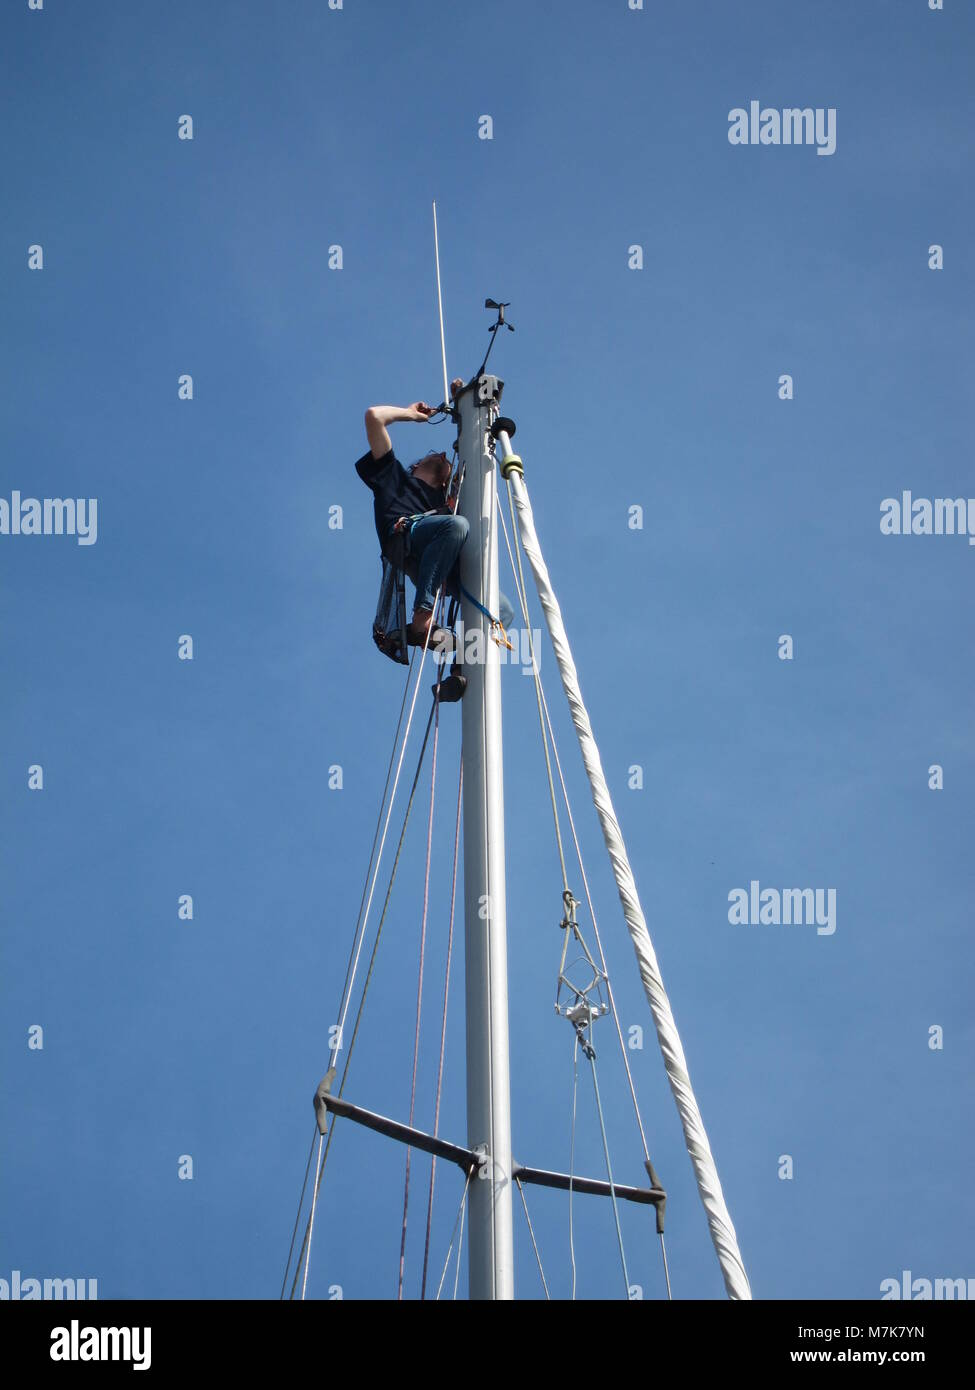 PLERIN,FRANCE-22MAY,2017: Sailor mounted on the mast of his boat in the port of Légué side Plérin - Stock Image